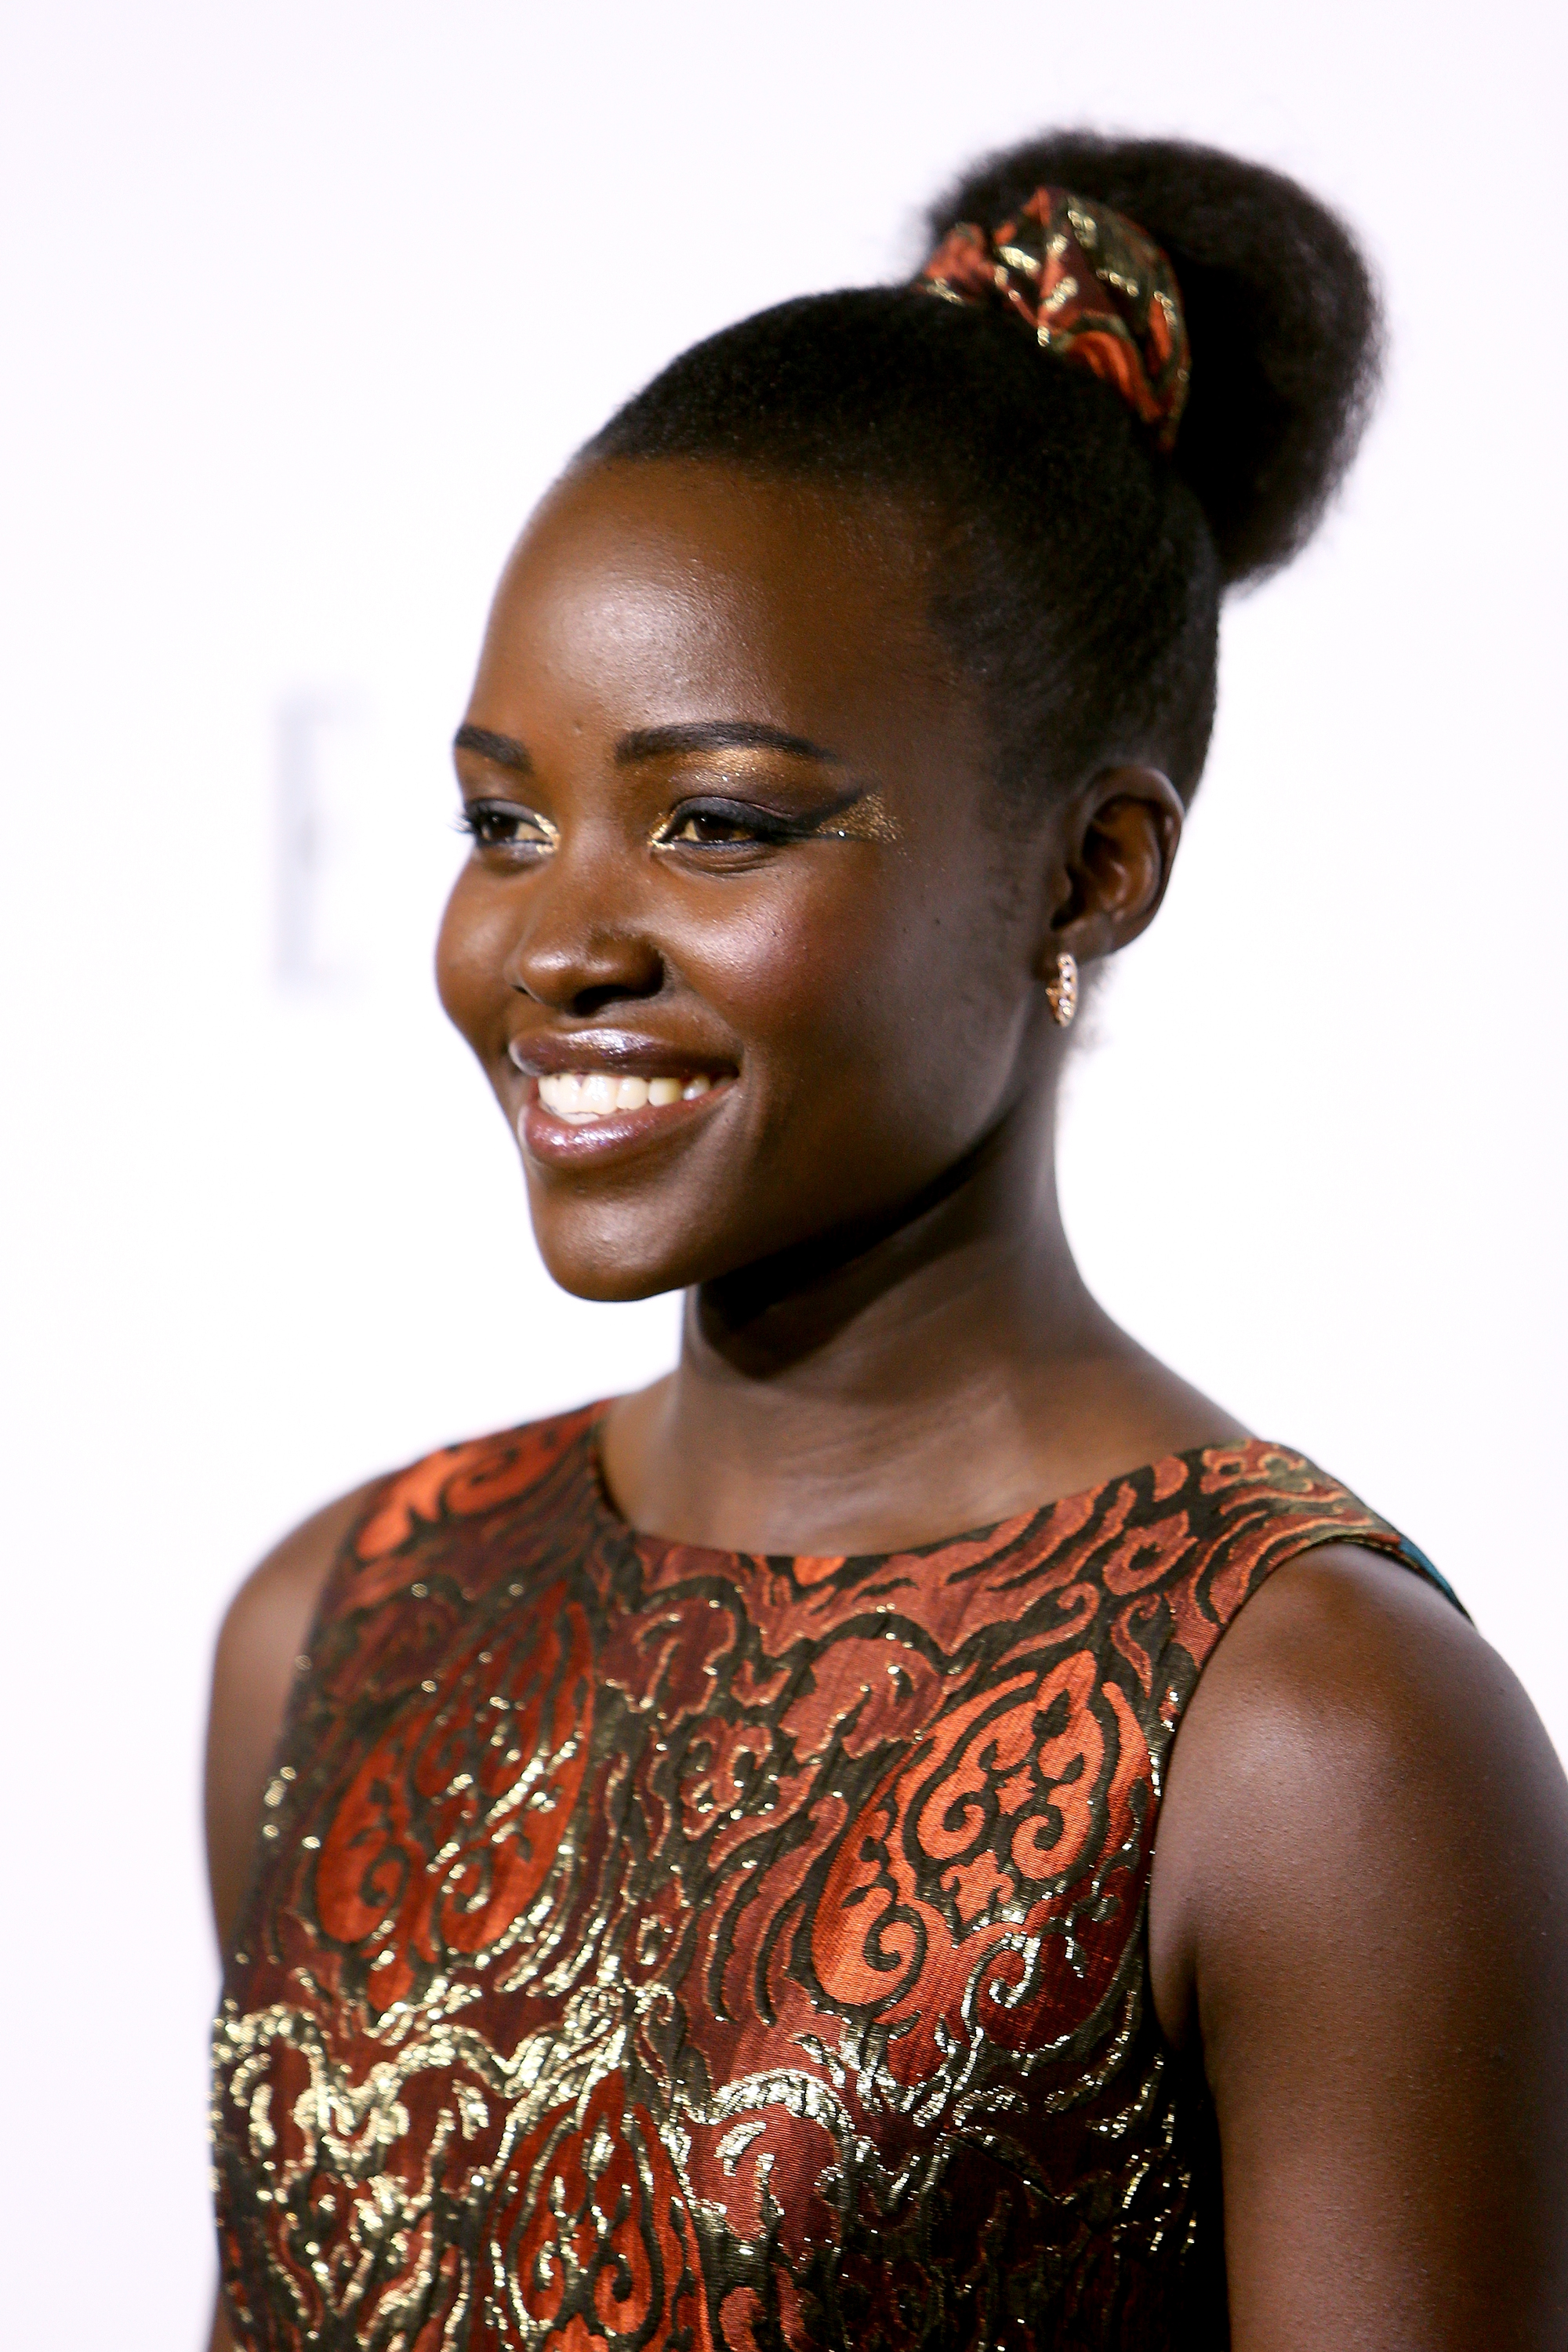 Lupita Nyong'o looks brilliant in her mermaid-style brocade gown